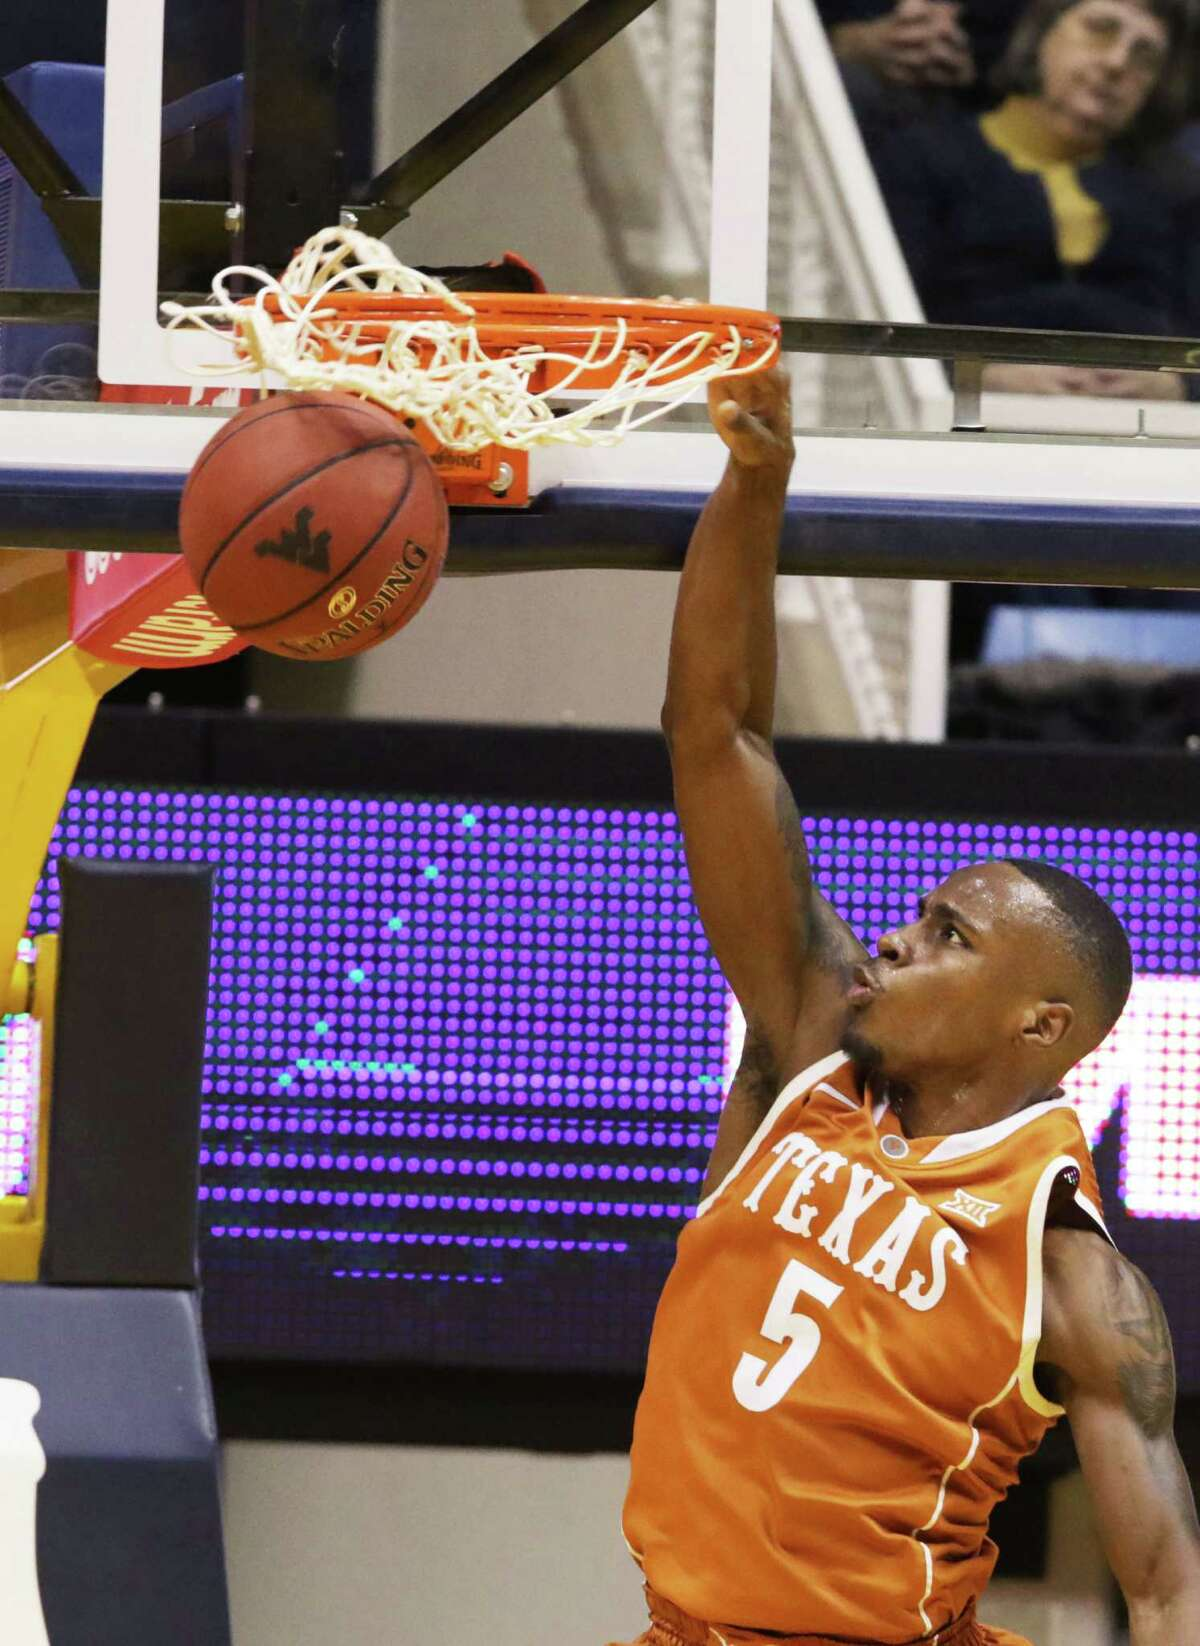 Texas guard Kendal Yancy dunks the ball during the second half against West Virginia on Jan, 20, 2016, in Morgantown, W.Va. Texas defeated West Virginia 56-49.